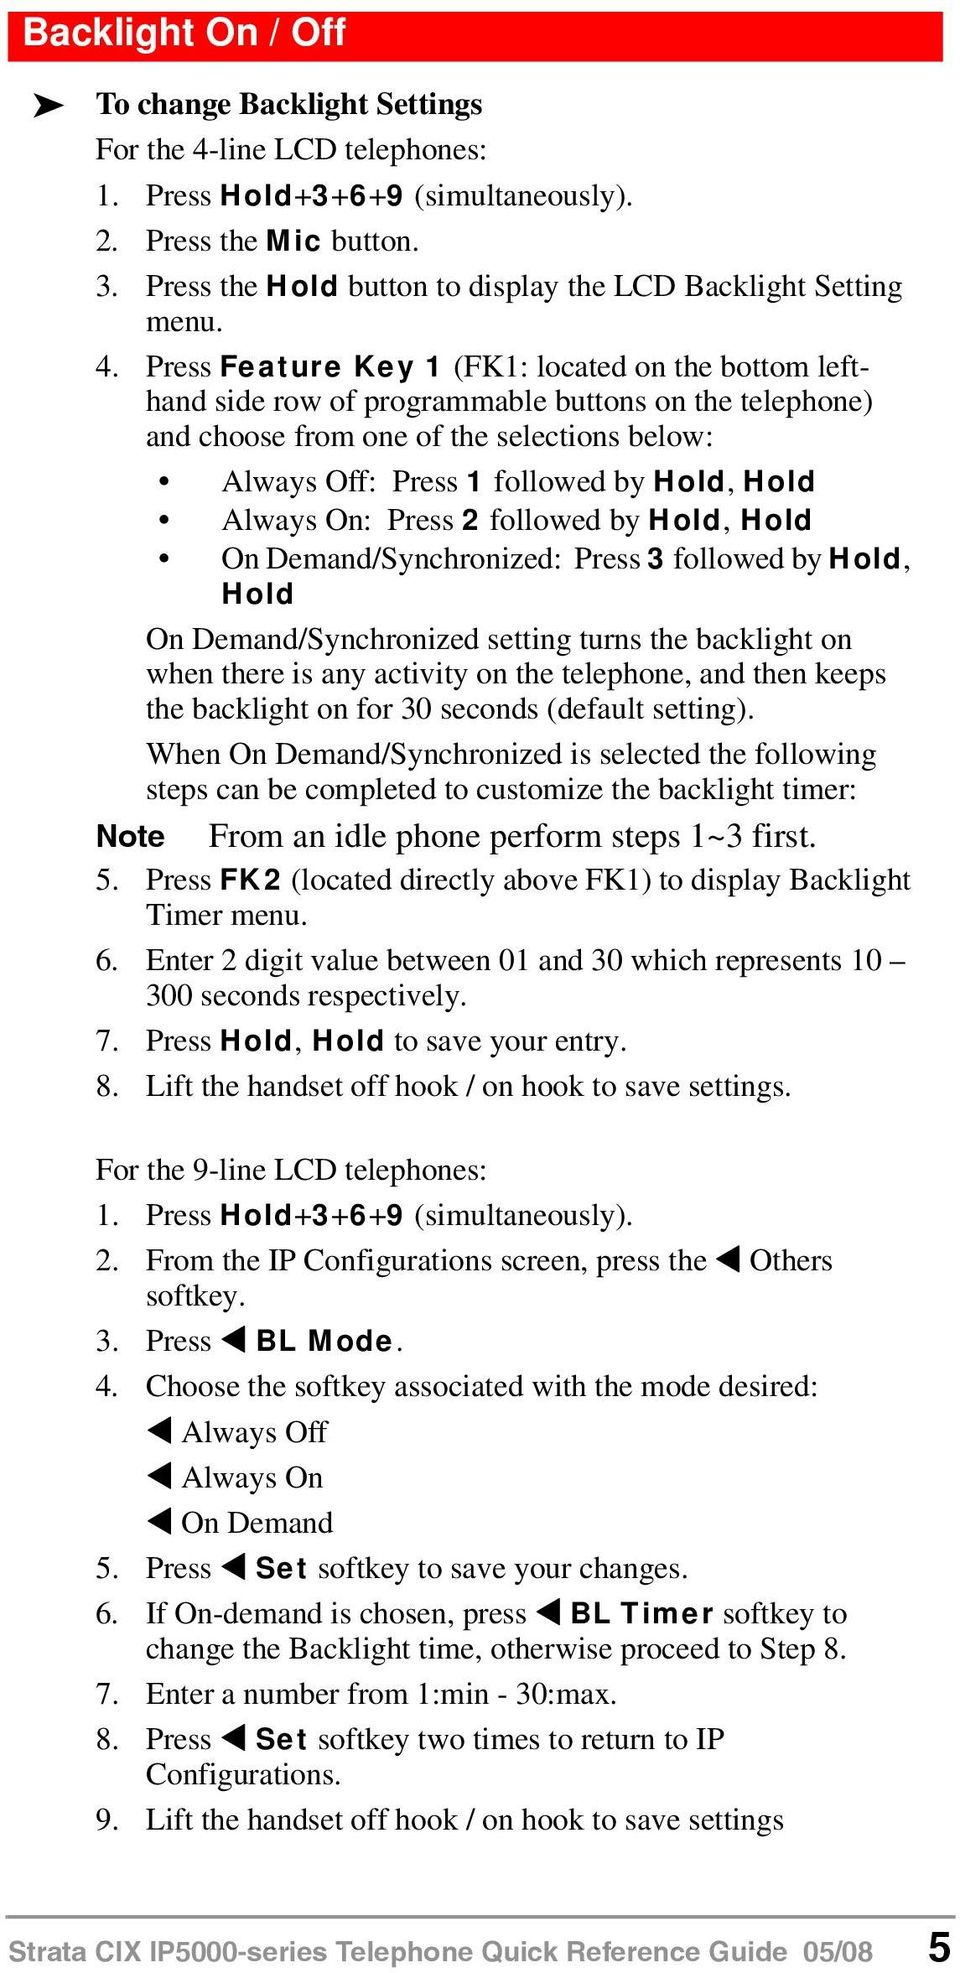 Press Feature Key 1 (FK1: located on the bottom lefthand side row of programmable buttons on the telephone) and choose from one of the selections below: Always Off: Press 1 followed by Hold, Hold